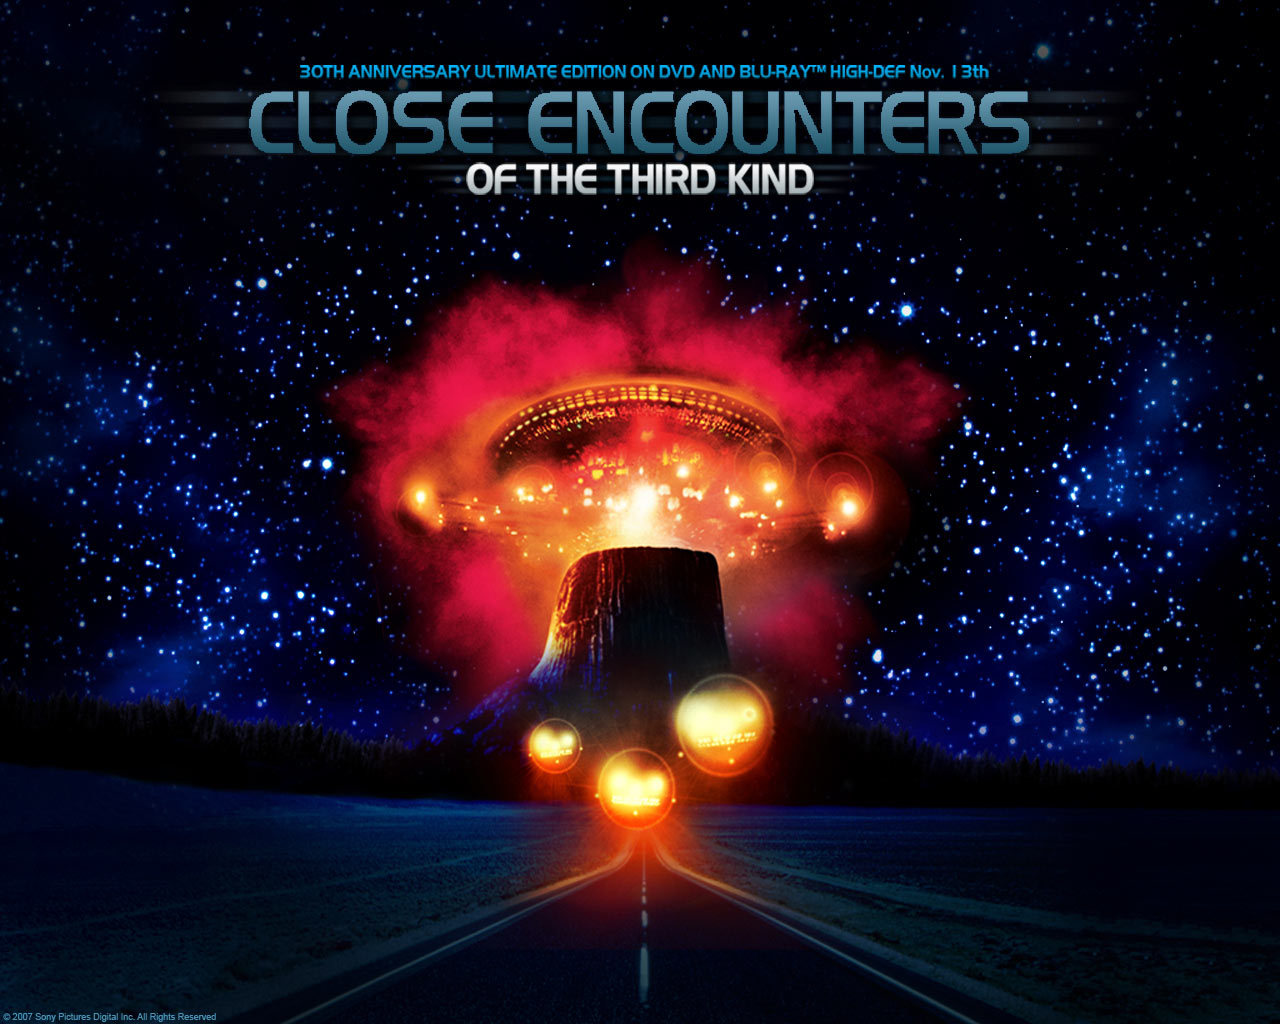 Secret Encounters http://vladimirkorsakov.blogspot.com/2011/11/close-encounters-of-3rd-kind-was-based.html